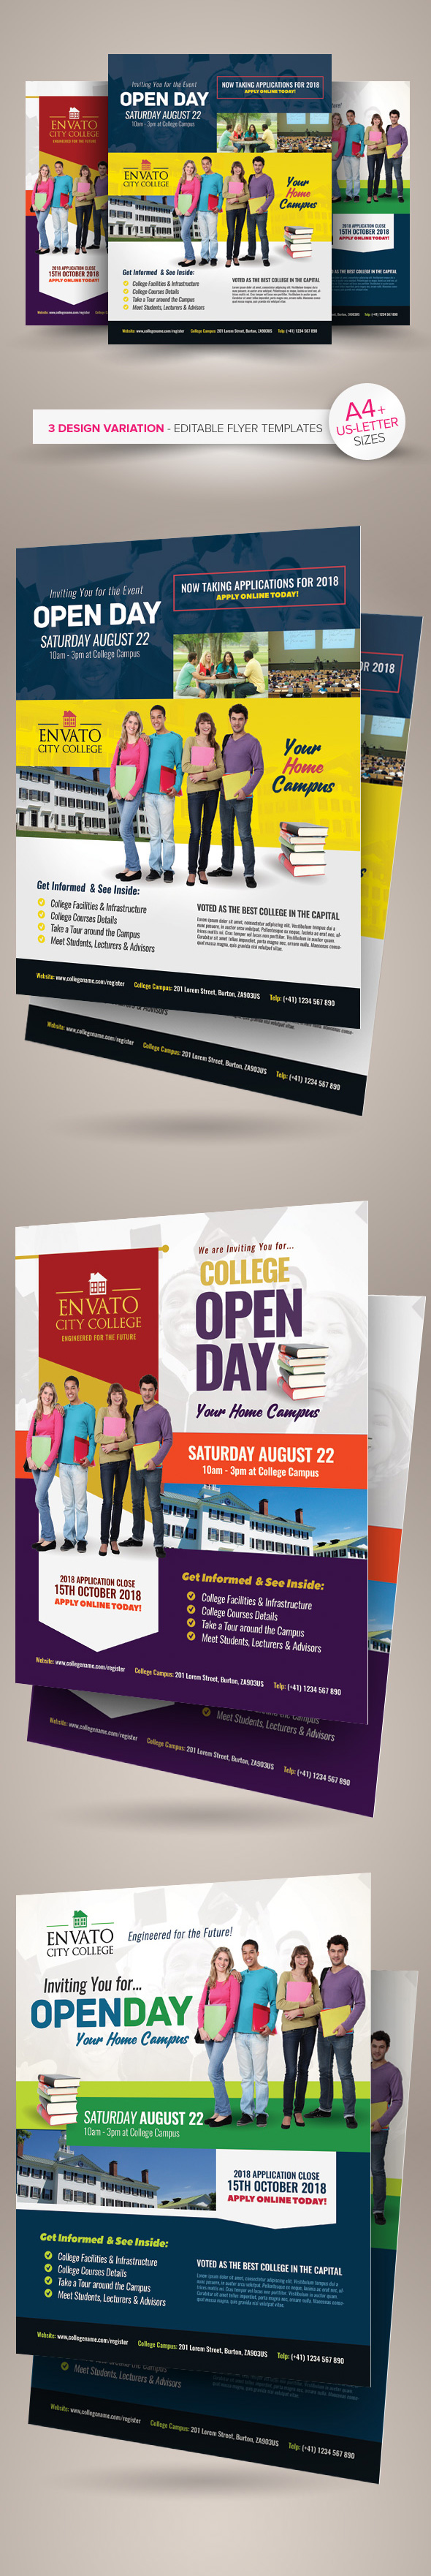 College Open Day Flyer Templates On Behance